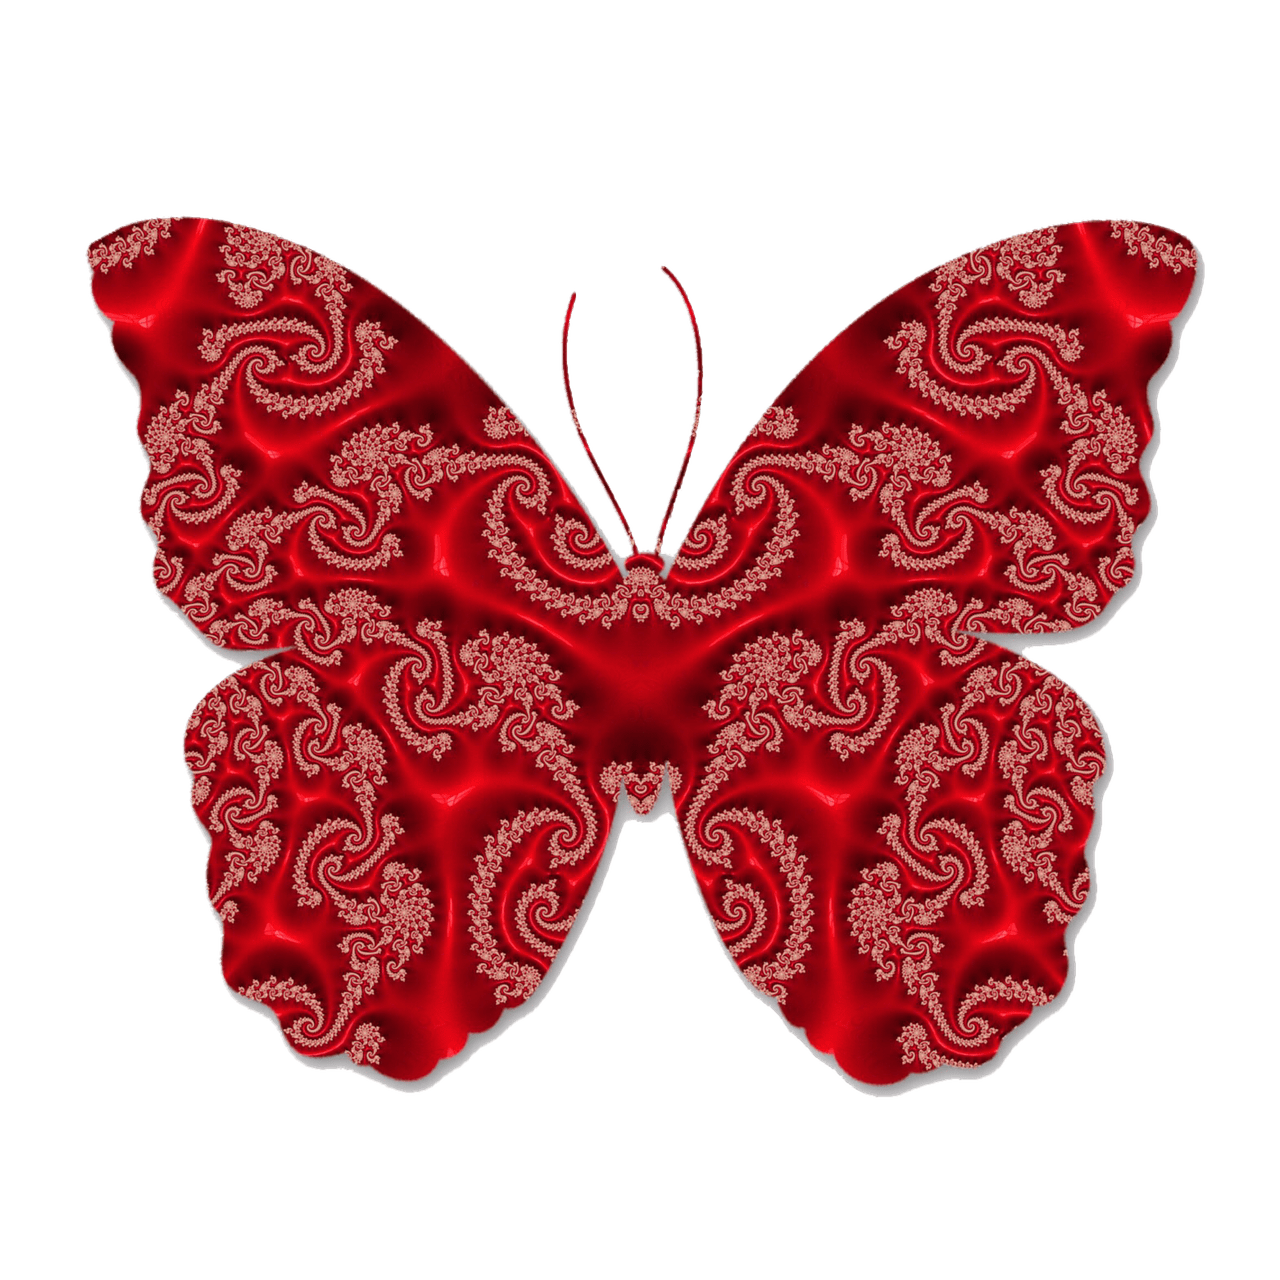 Red lace transparent png. Paisley clipart butterfly